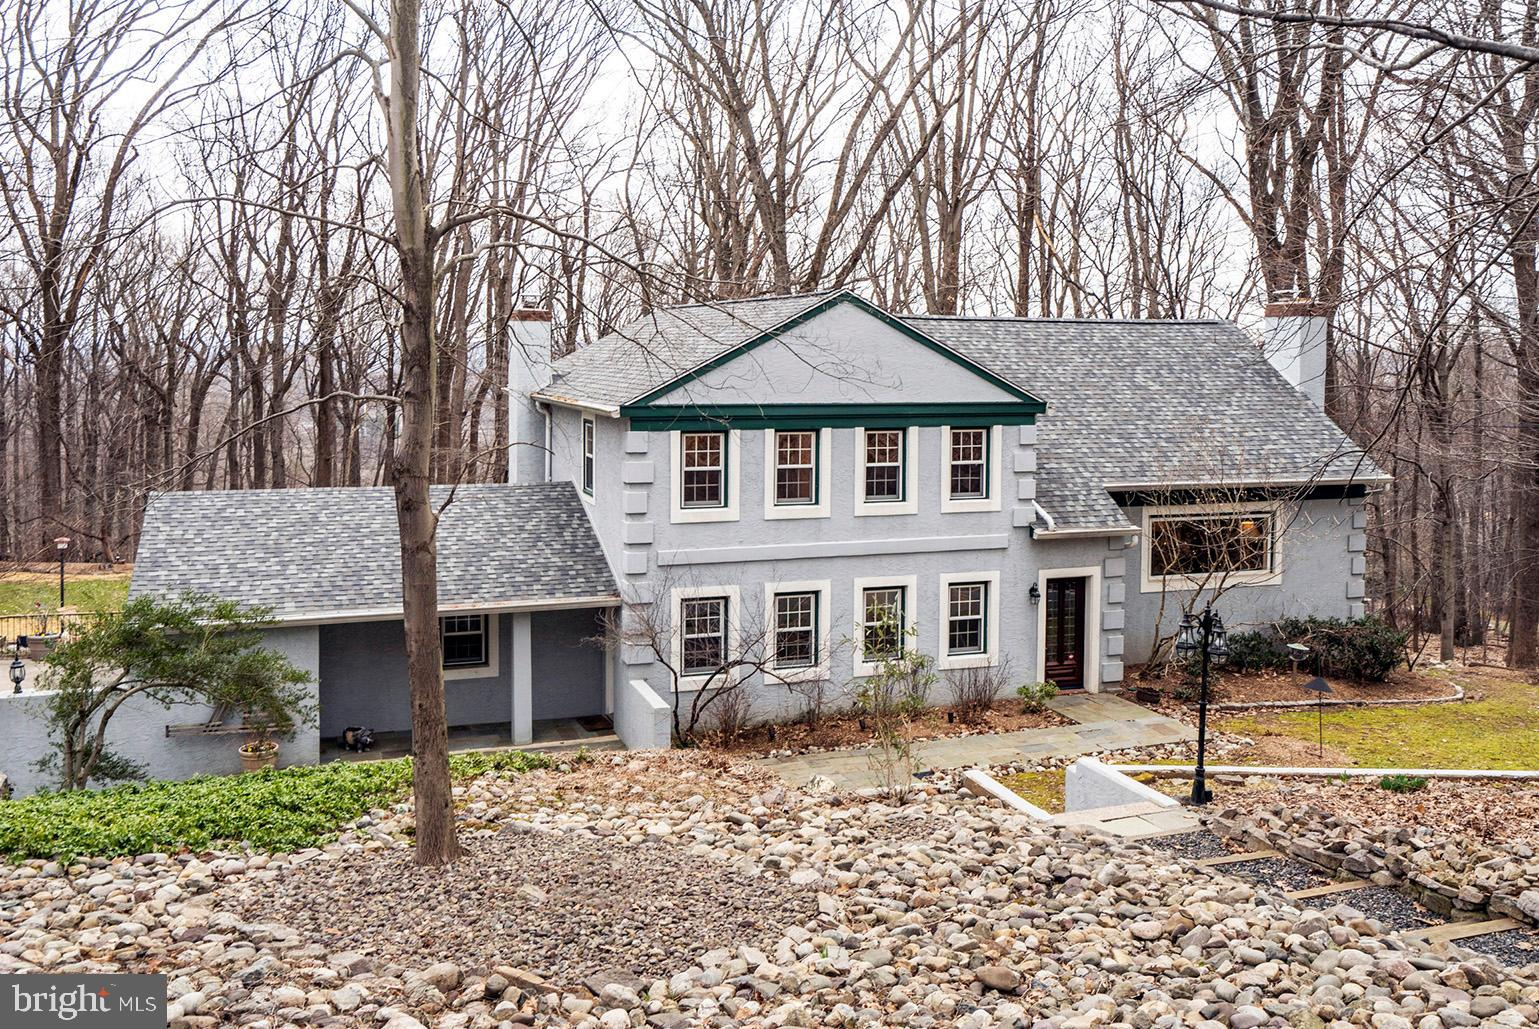 This stunning and completely renovated home is located on historic Valley Forge Mountain. It is situated on a large, partially wooded lot with a level yard on a cul-de-sac street. You will be immediately impressed by the panoramic views overlooking Valley Forge National Park and the Freedom Foundation Flag. Positive and loving energy can be felt throughout this home from the various living spaces and Cook's Kitchen to the 1800 sq ft multi-level deck and mature gardens, there is plenty of room for the whole family to enjoy. Enter in the Foyer with marble floors and double coat closet that leads you to the formal living room with brick fireplace and wood mantel. The flowing floor plan continues into the dining room that features a dramatic chandelier encircled by recessed lighting for a wonderful ambiance. All windows throughout have been replaced with clear Pella windows that provide views from every room. The dining room is open to the kitchen with custom soft close cabinetry, granite counters, Viking dual fuel stove and convection/microwave ovens, Subzero refrigerator and wine refrigerator. Step down to the cozy family room with Vermont Castings fireplace and sliding door that leads to the deck. The convenient laundry room with access to the garage and marble tiled powder room complete this level. The finished (partial daylight) walkout basement has a wet bar and an office area. Upstairs you will find four spacious bedrooms (one of which is a Prince/Princess Suite with a private bath with a Jacuzzi tub). The upper level expanded Master Bedroom features his & her walk-in closets and a luxurious bath with a walk-in marble shower. There are too many other improvements to mention but some include: full house generator, hardwoods and tons of storage throughout, newly stained deck, new roof, garage door, HVAC systems and water heaters. Valley Forge Mountain offers an association that residents can choose to join. Enjoy wonderful social events throughout the year! It offers a private swim club, playground, Racquet Club and so much more. Valley Forge Mountain is truly a unique place to call home. This harmonious property is truly one-of-kind.